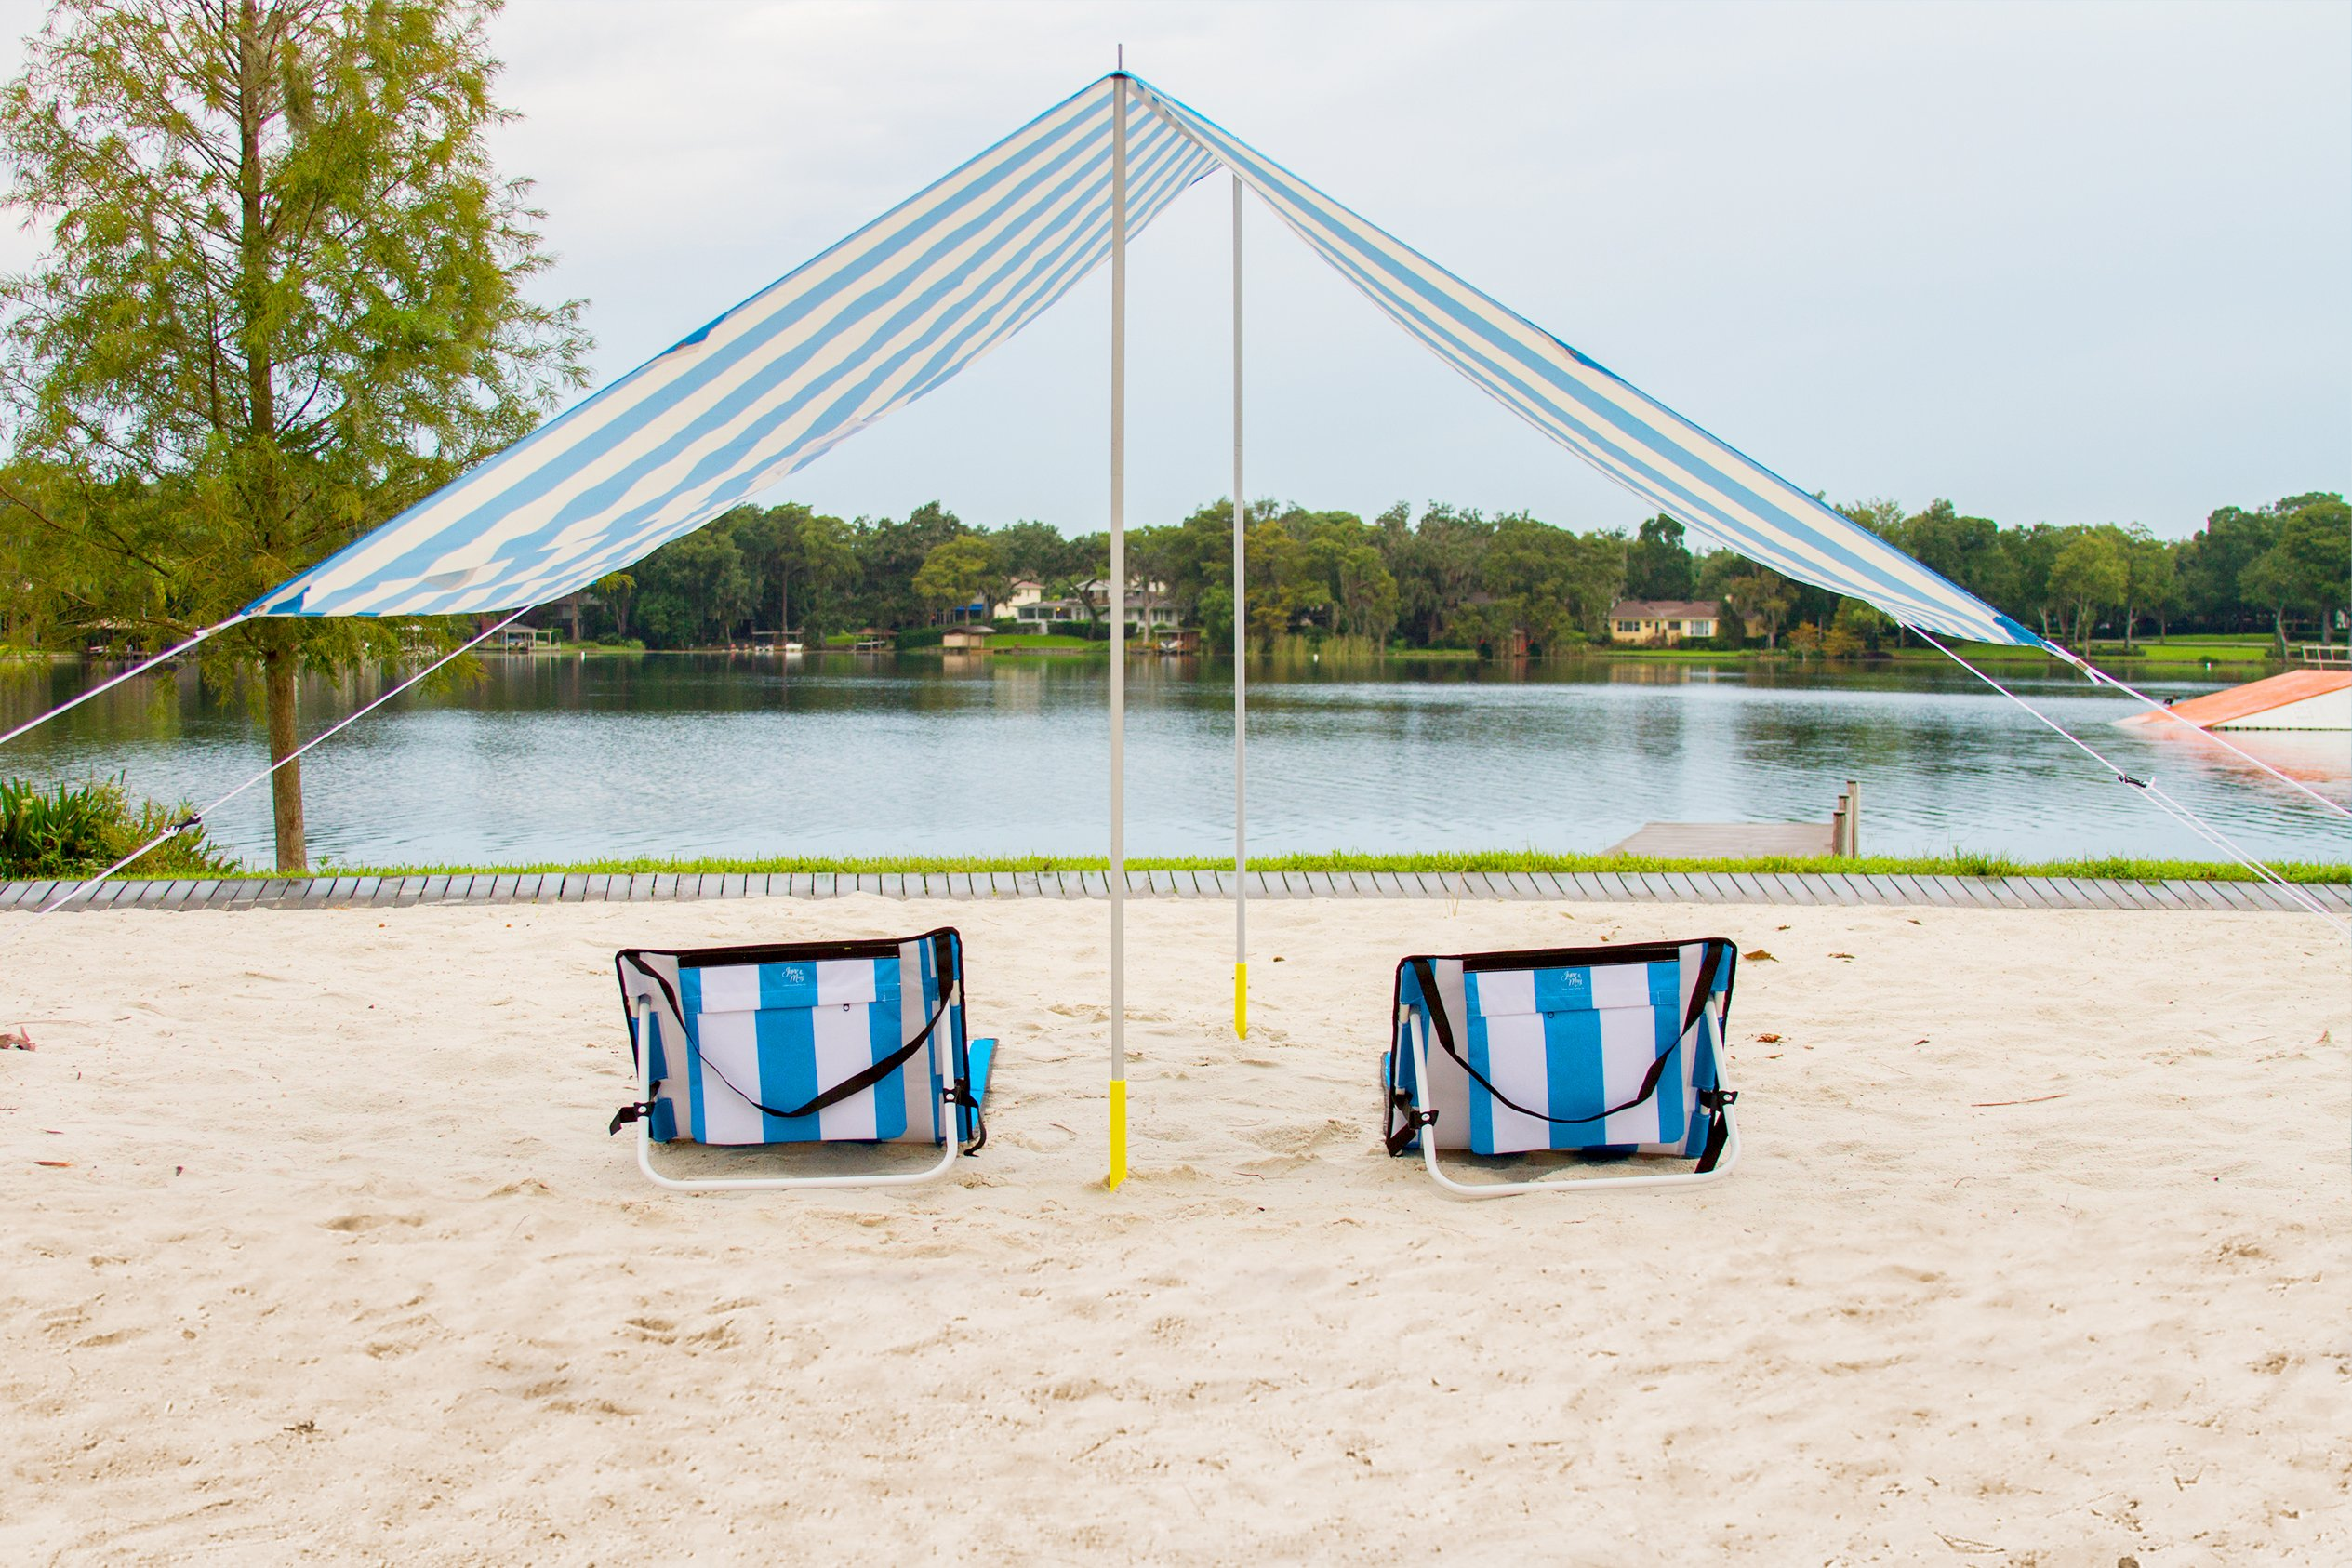 June & May Beach Chair - Compact, Portable, Light-weight, Easy Set-Up, with Storage Pouch and Adjustable Back Beach Chair by June & May